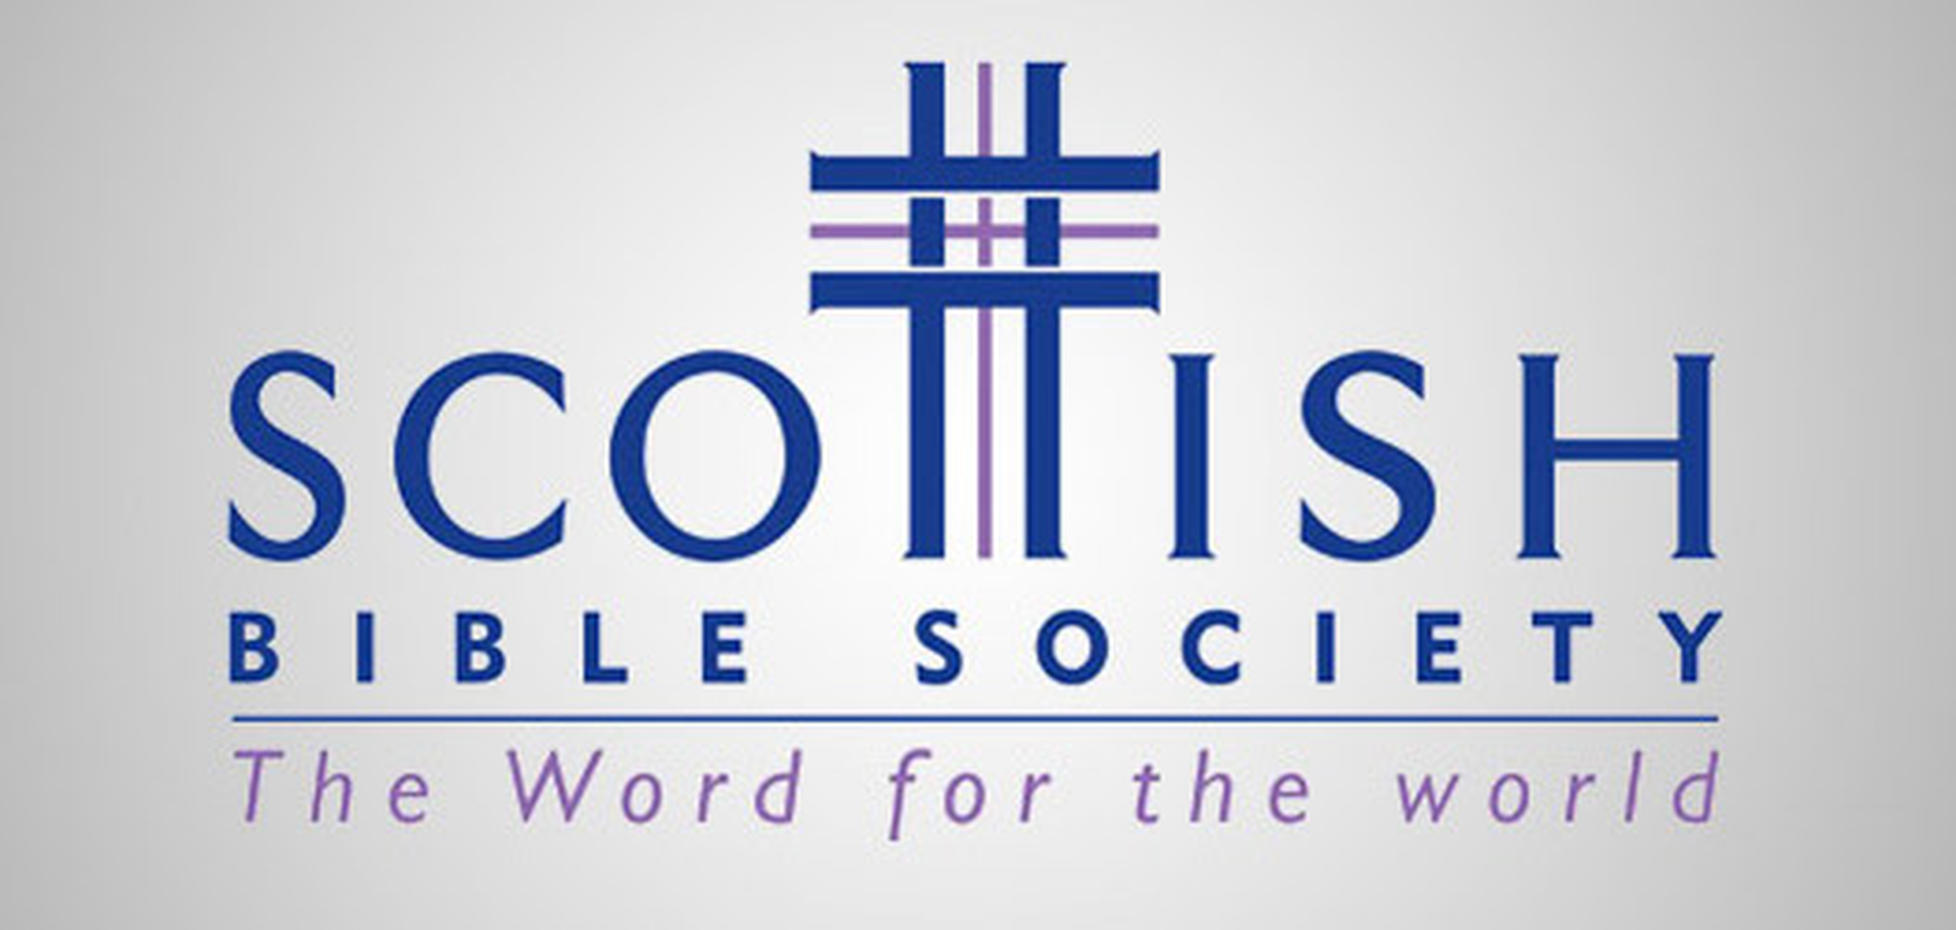 Partnership with Scottish Bible Society